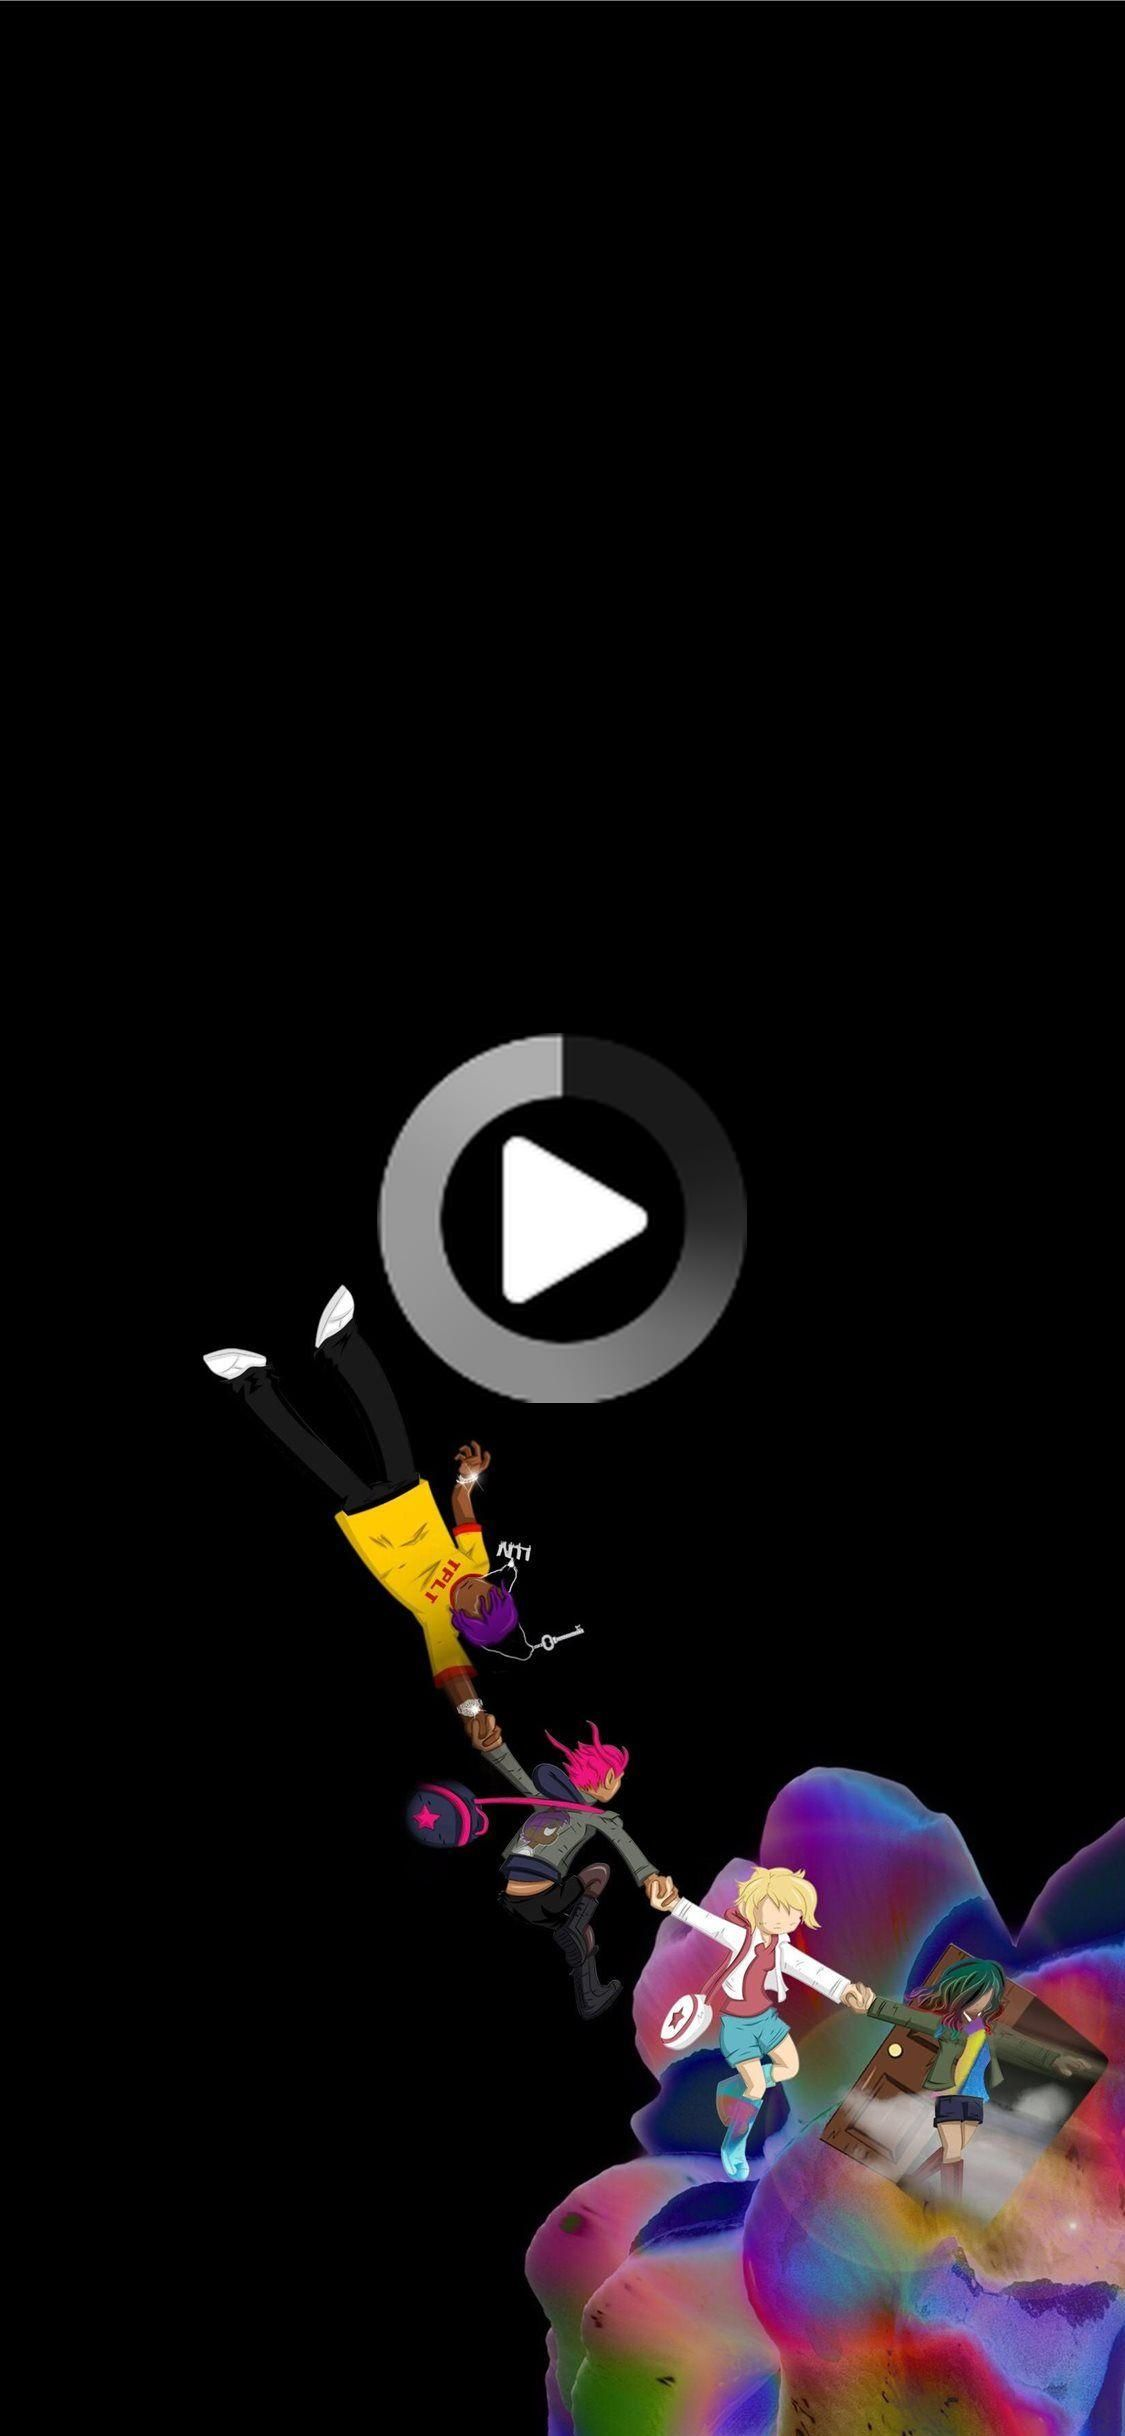 Pin On Live Wallpaper Iphone Lil uzi vert turned into evel knievel during his set at the rolling loud music festival this weekend. pin on live wallpaper iphone